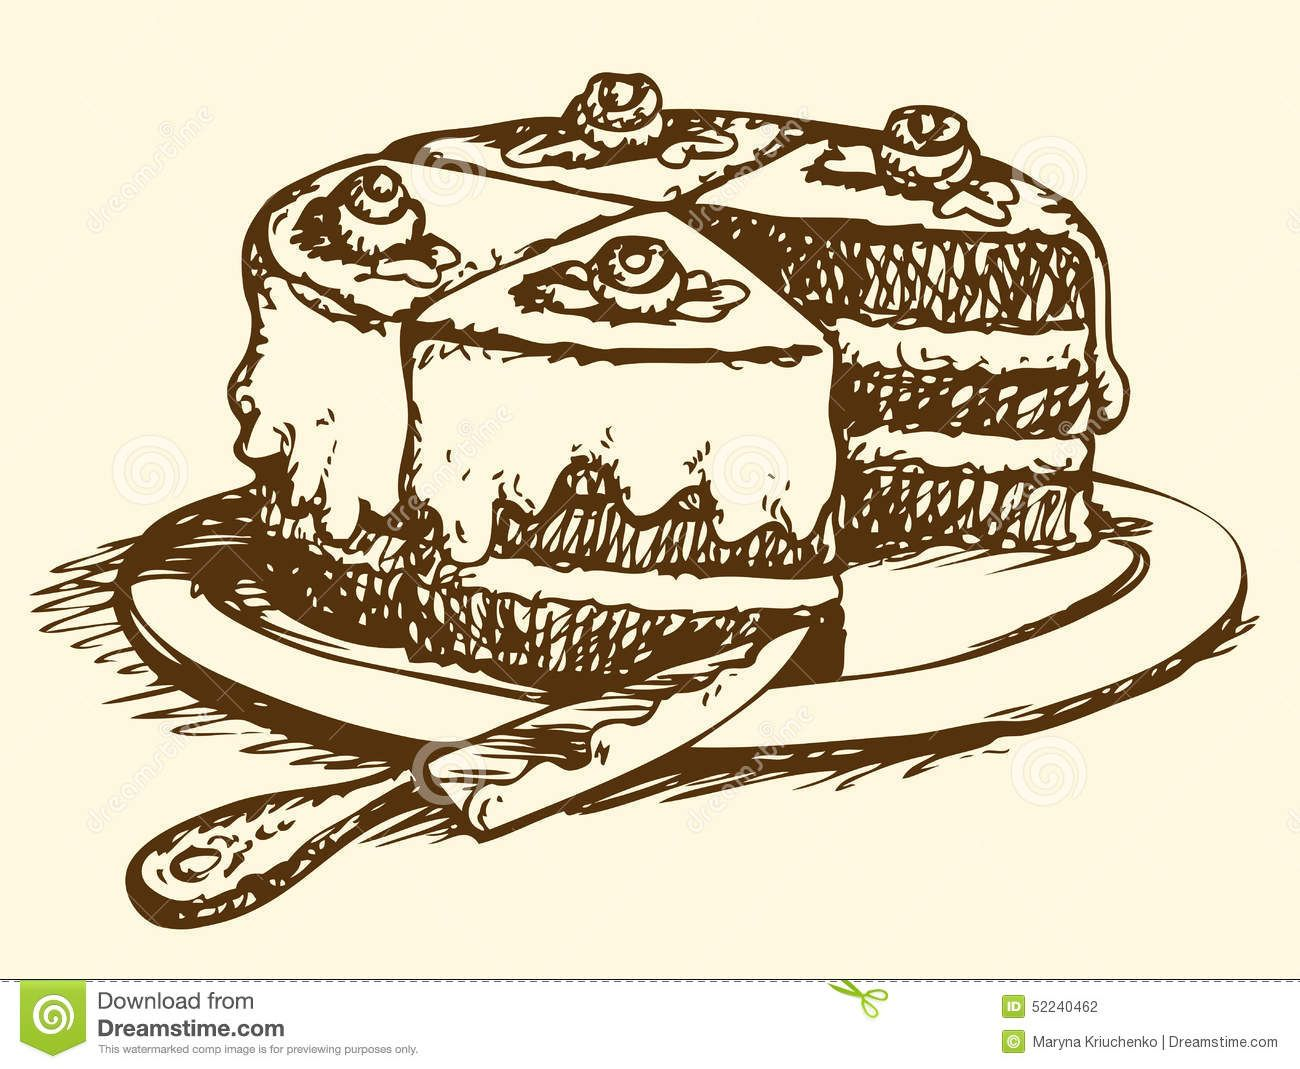 Image result for drawing of slice of cake | drawing | Pinterest for Drawing Cake Slice  56bof